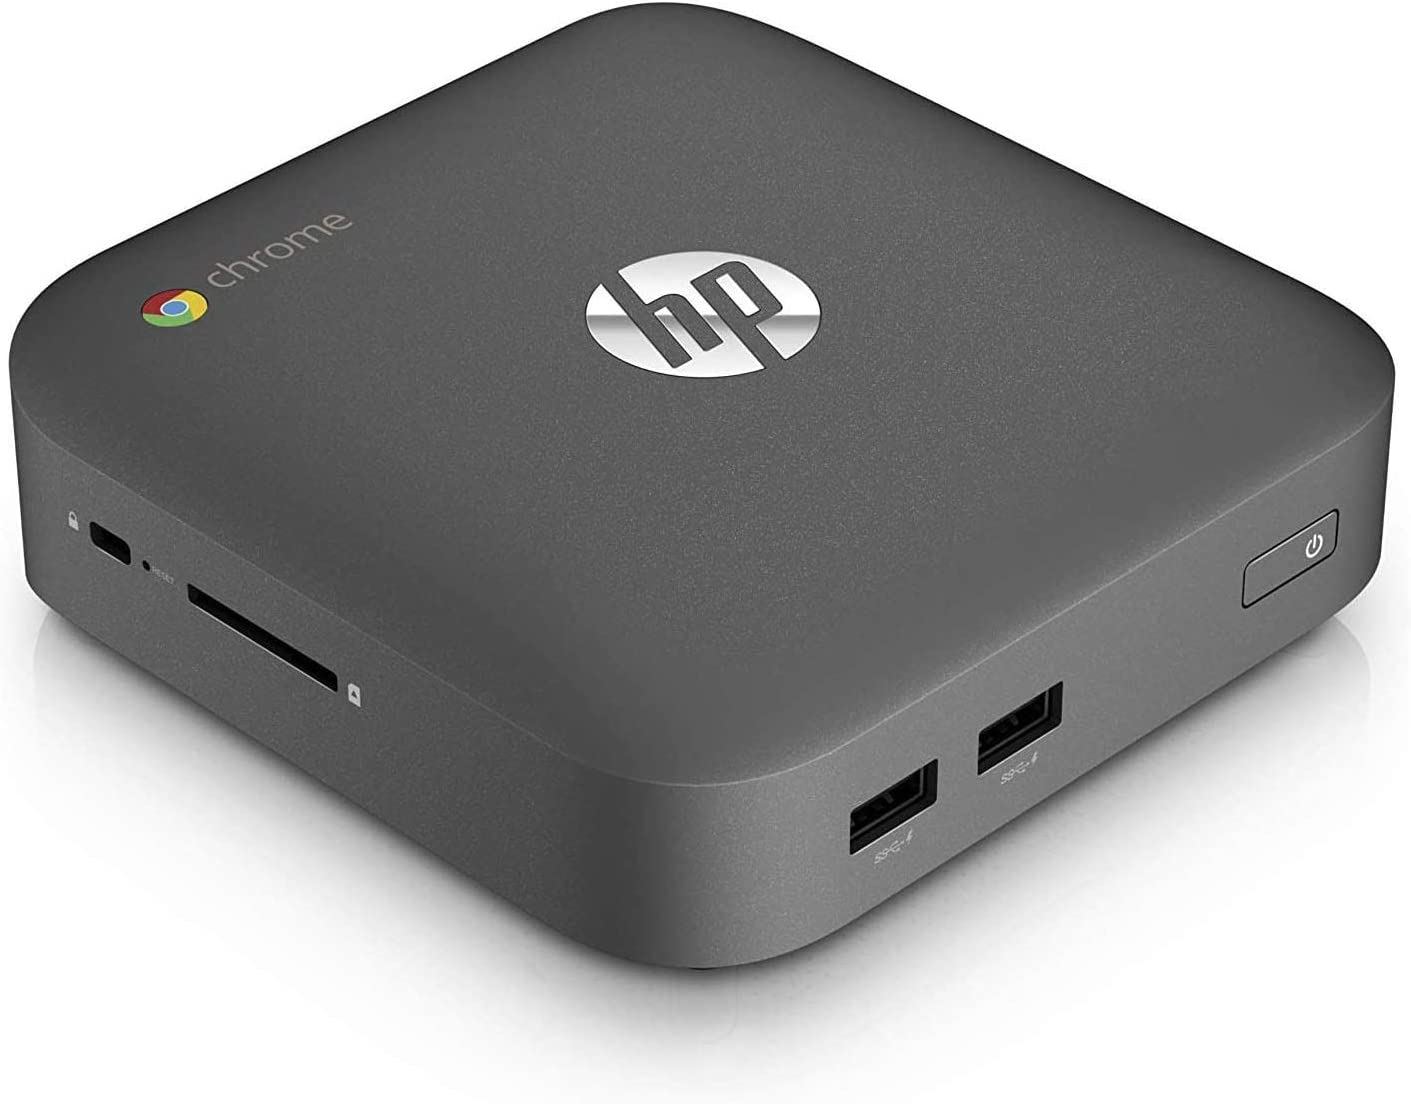 HP J5N50UT Chromebox Intel Celeron 2955U 1.40 GHz 4GB RAM 16GB SSD Mini PC Desktop Computer (Renewed)